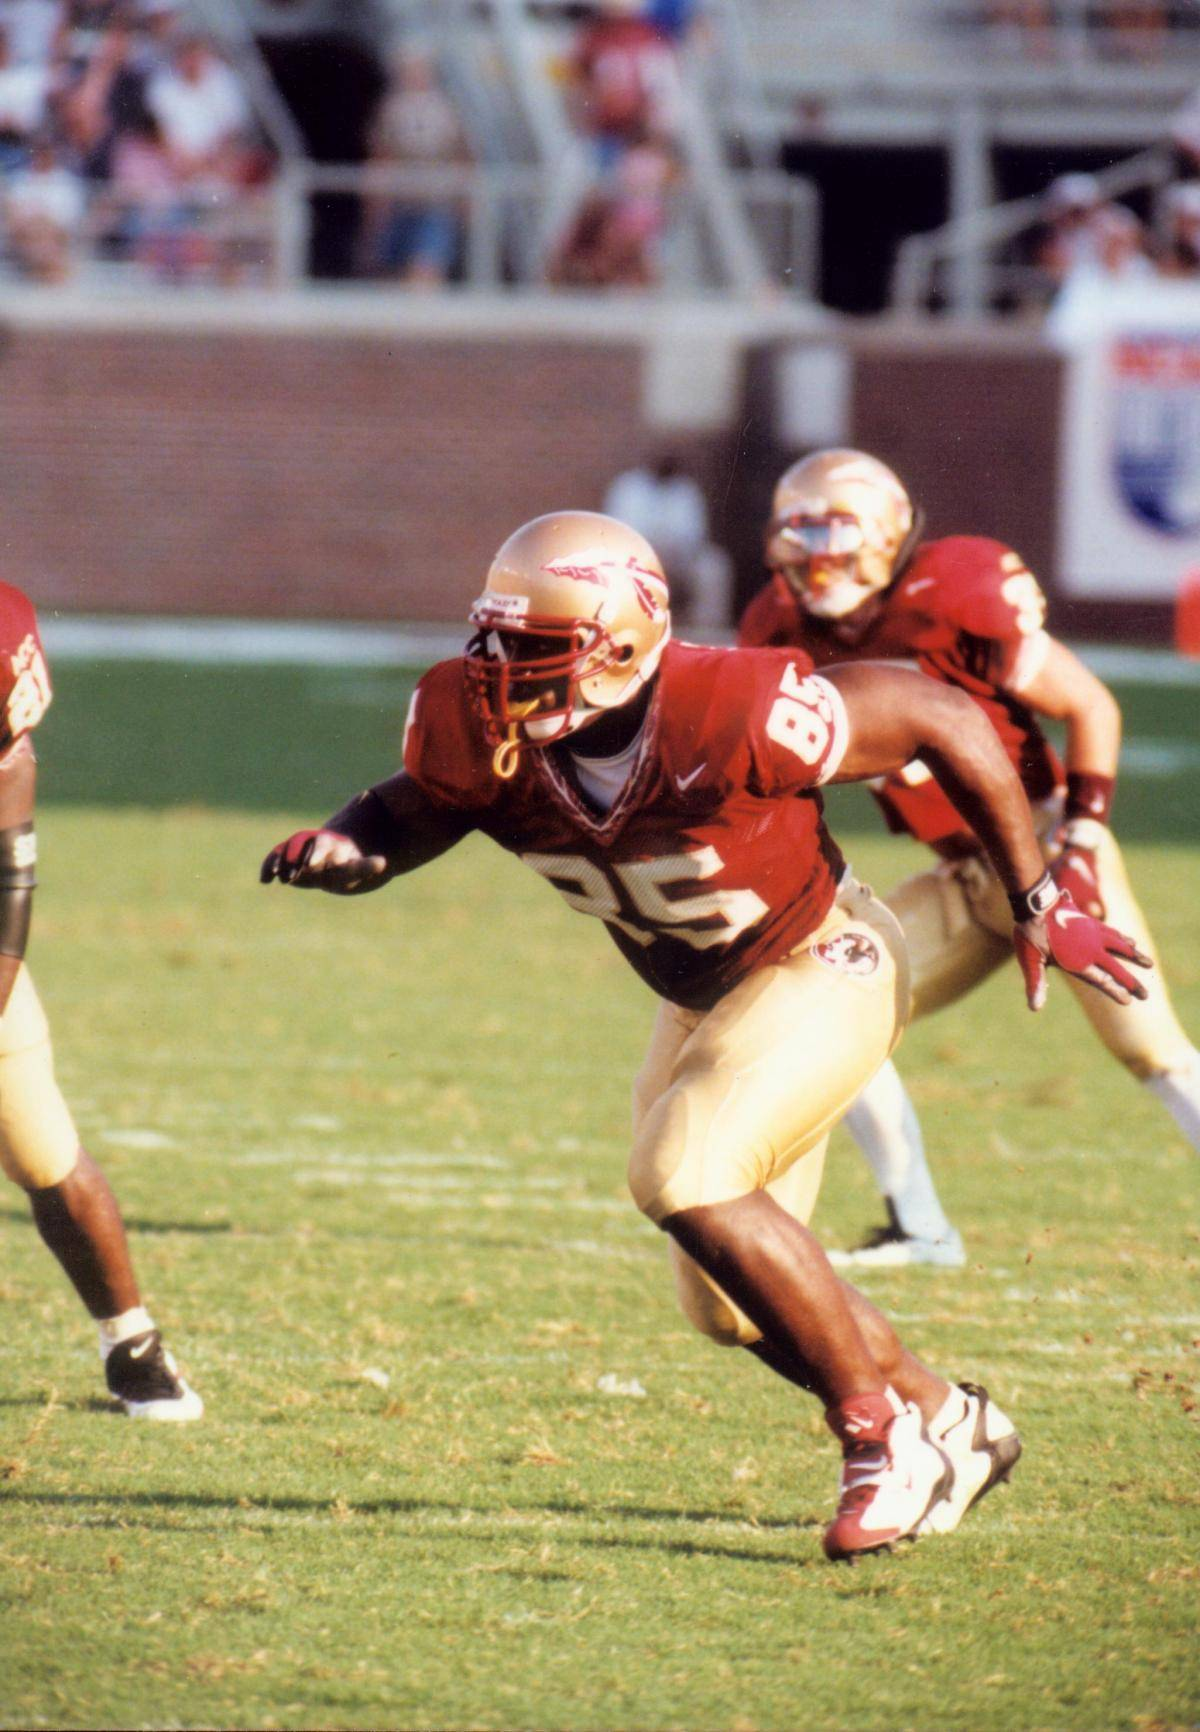 April 3, 2007: Former Seminole Andre Wadsworth, the third overall in the 1998 NFL#$%^Draft, has signed a contract to play for the New York Jets.